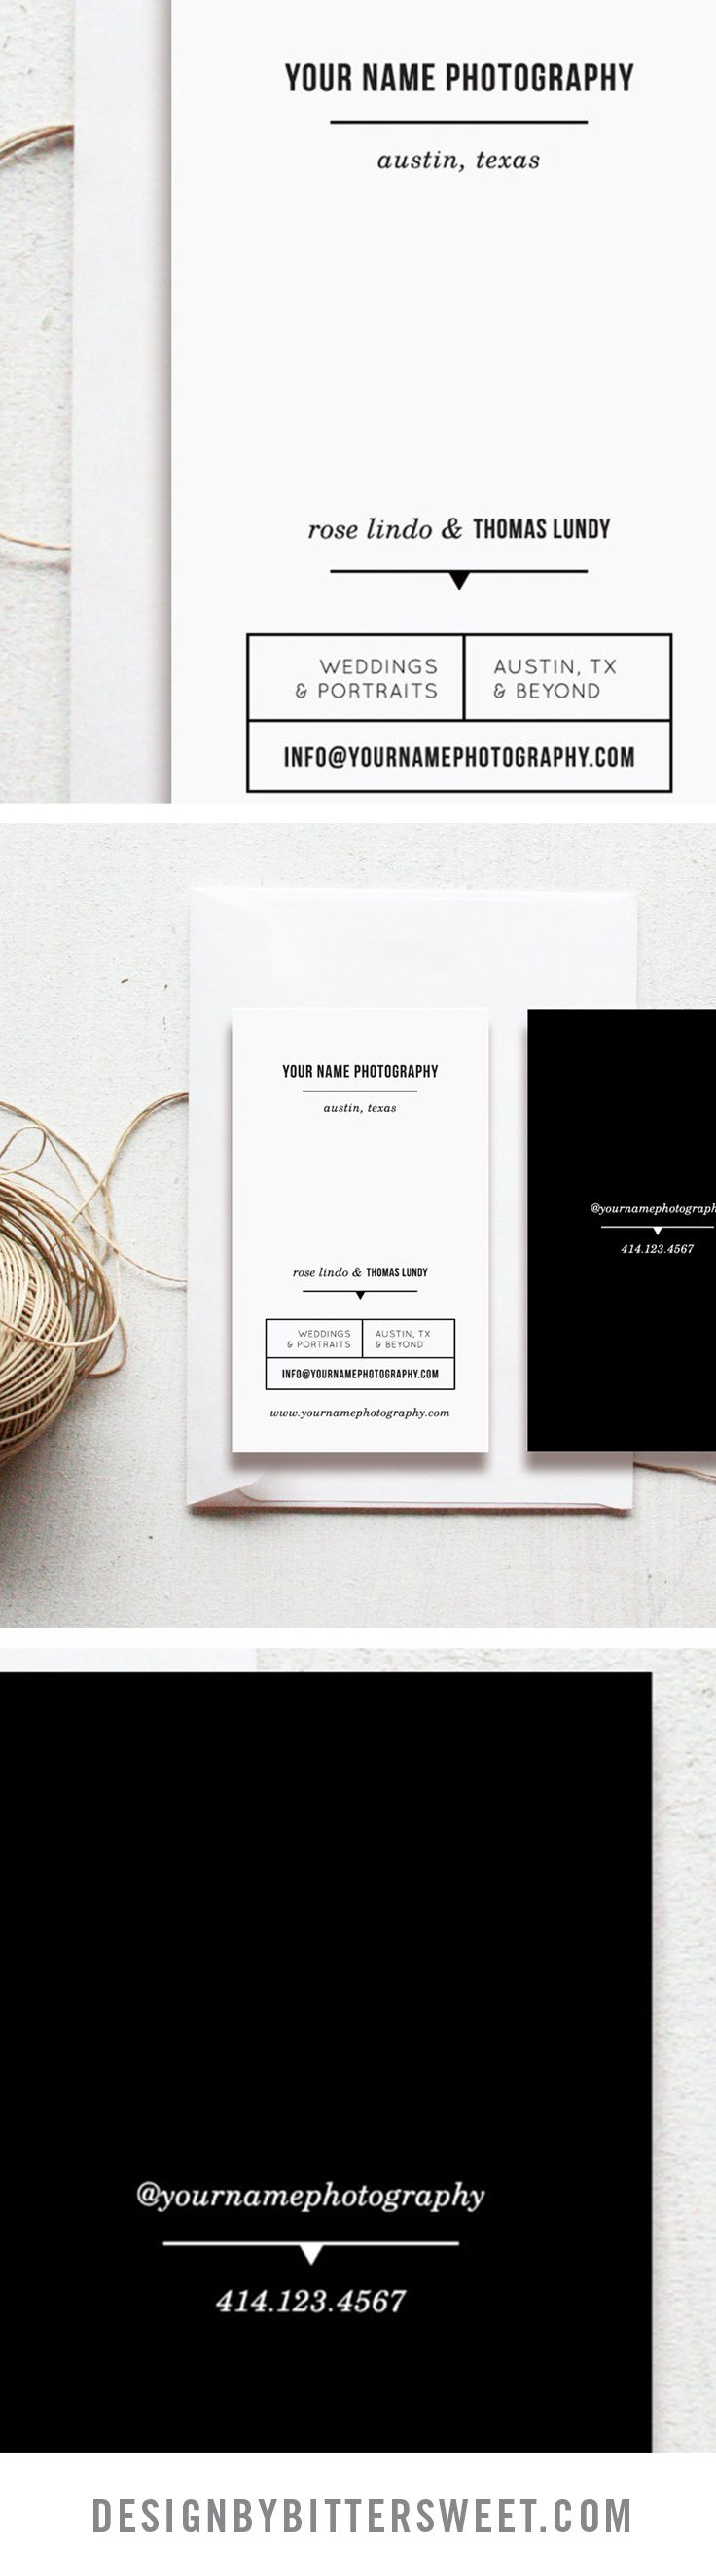 Business cards for wedding photographers. Photoshop templates for photography. Business card template.